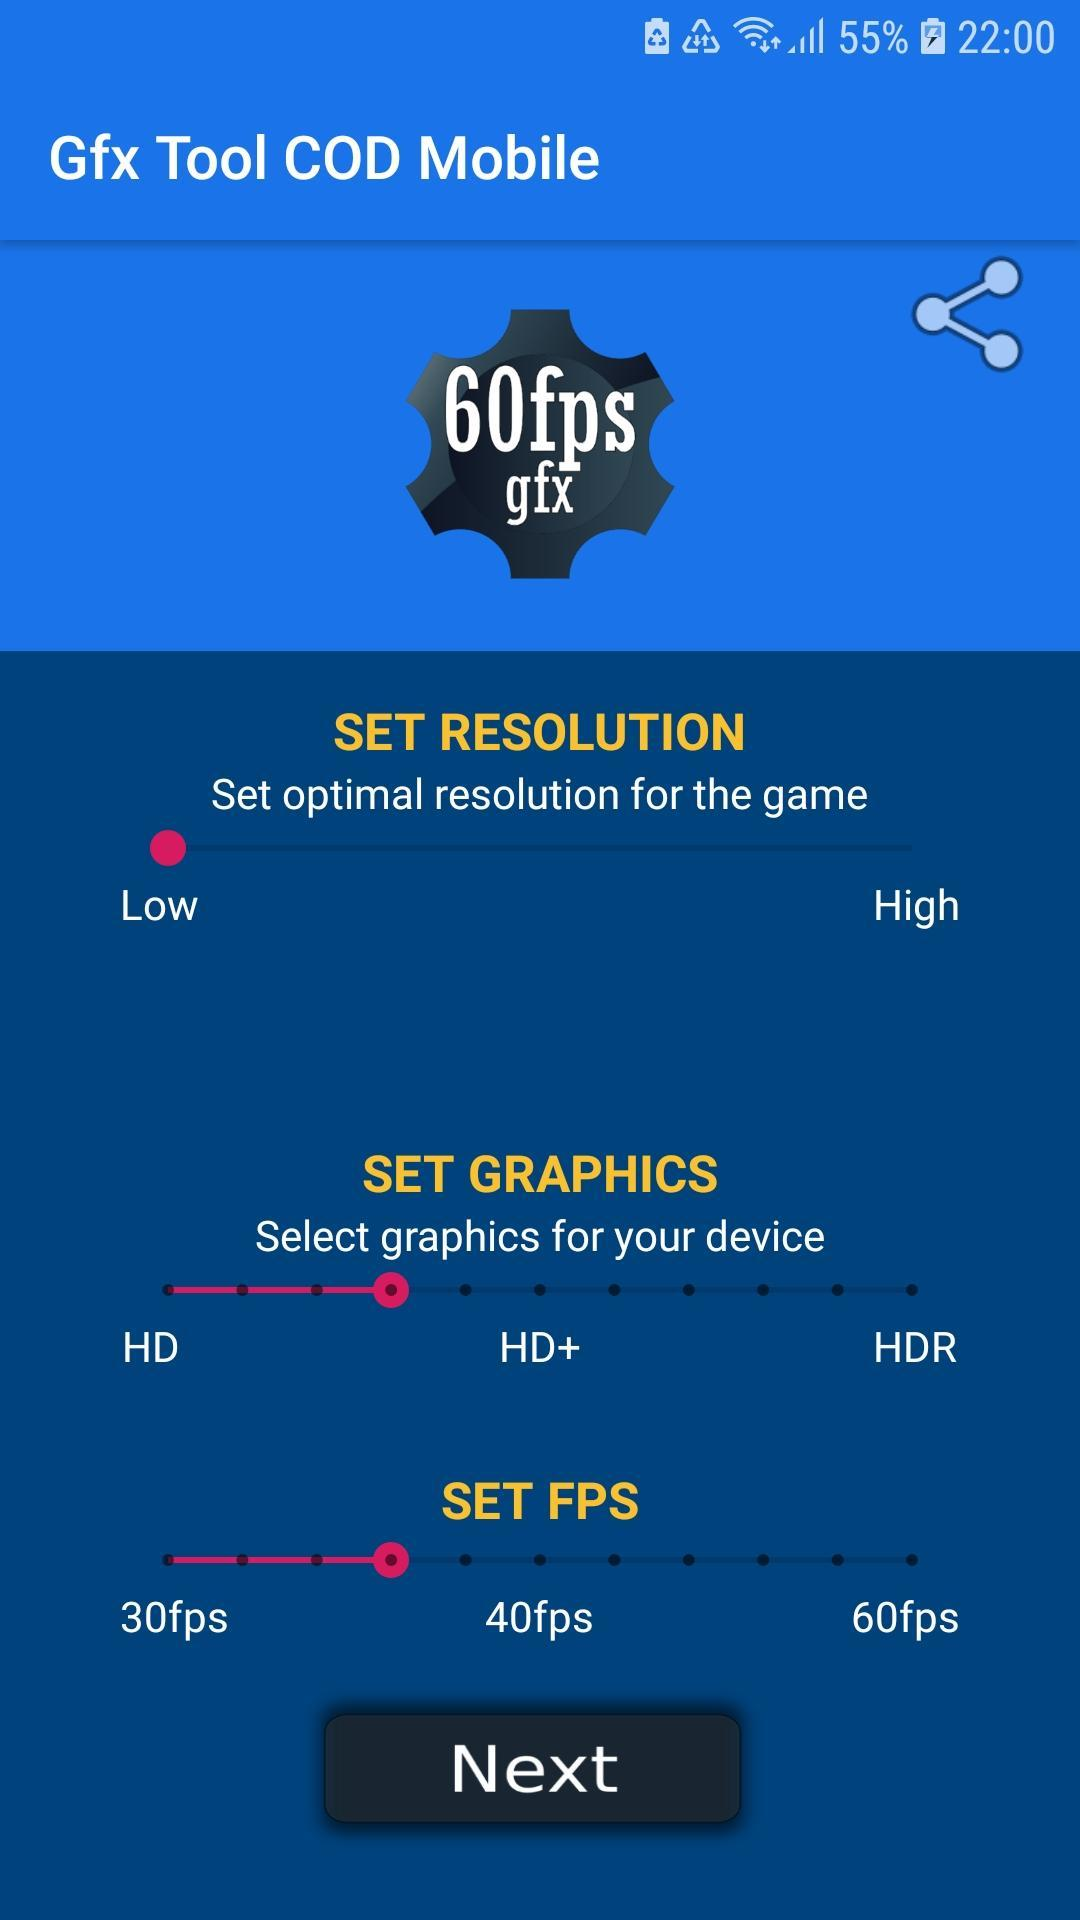 GFX Tool for COD Max fps No Ban for Android - APK Download